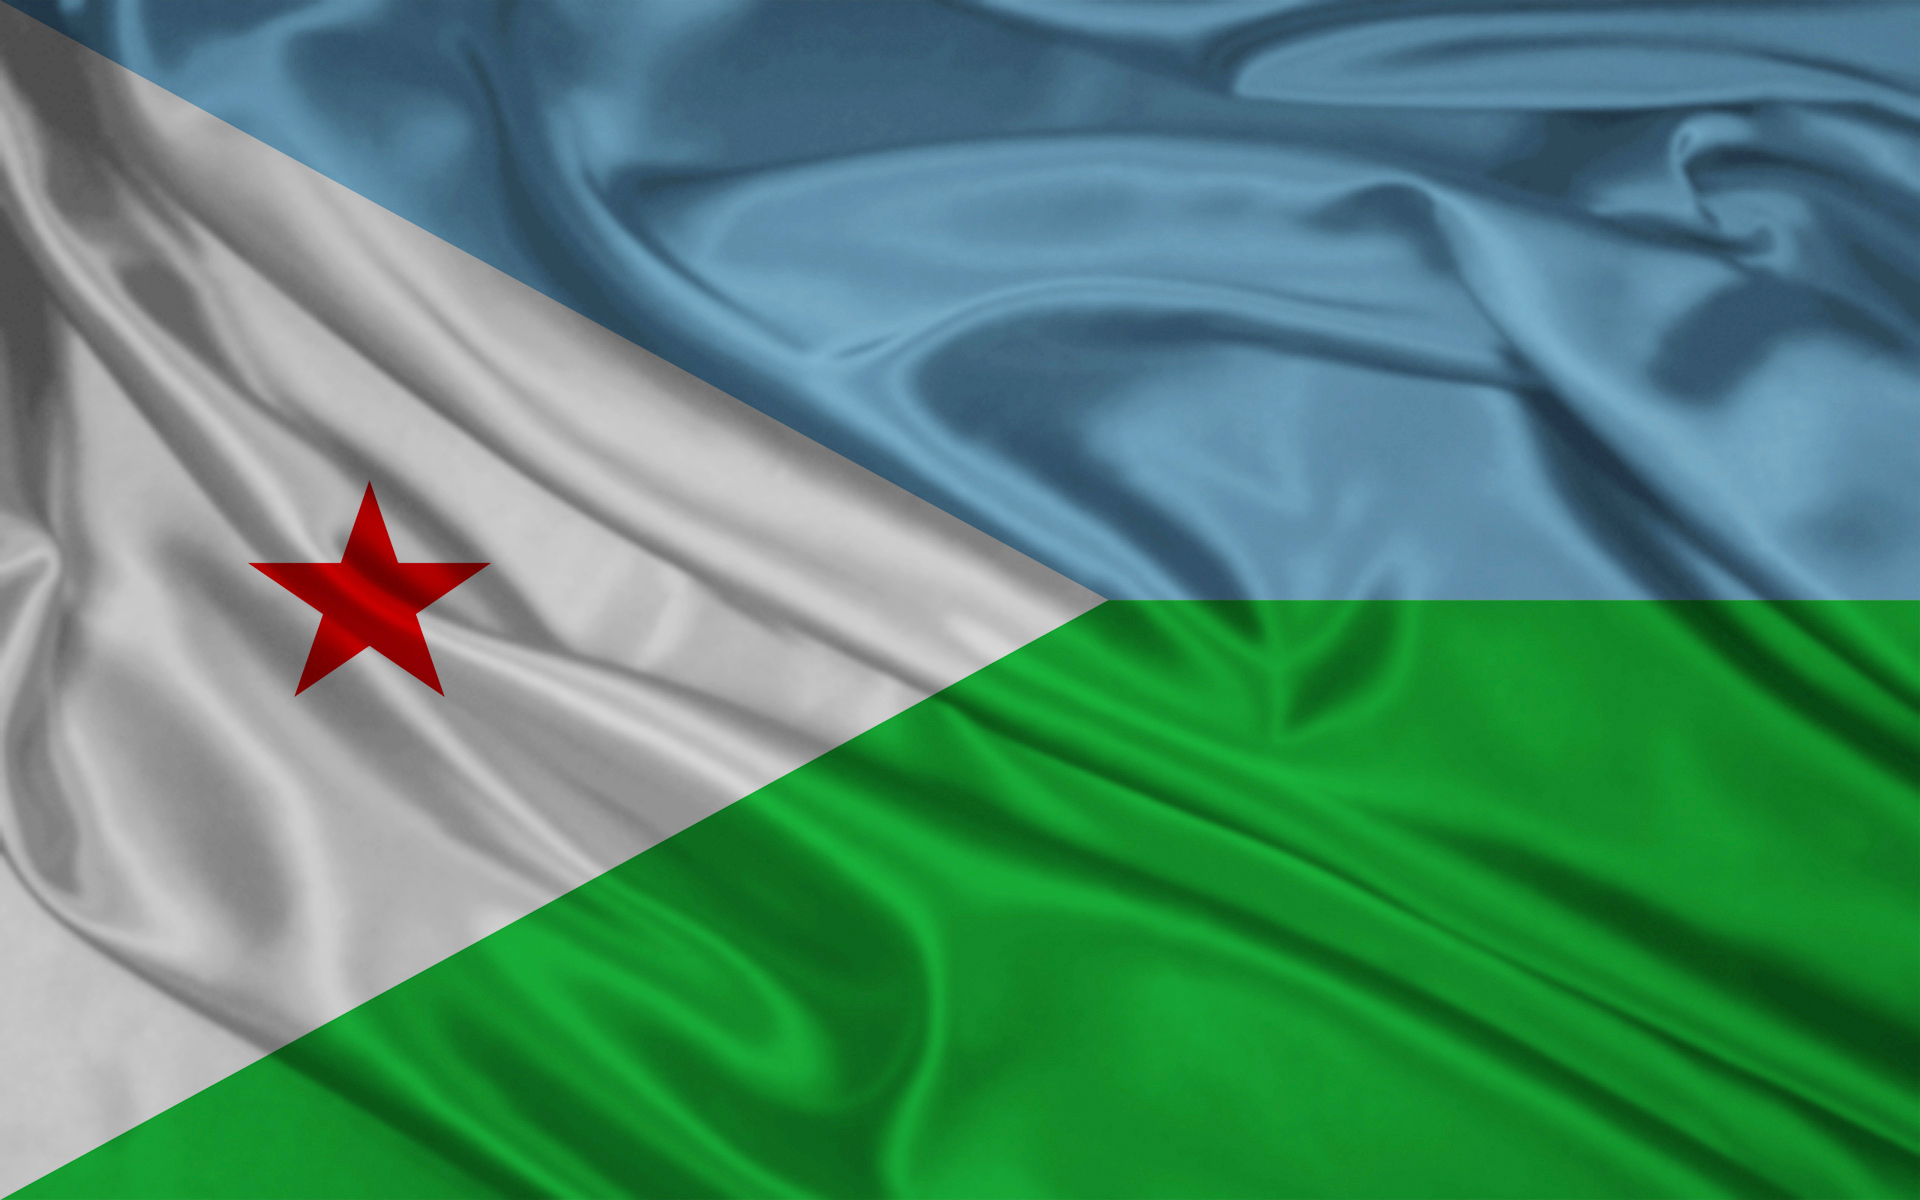 Djibouti Flag and Description